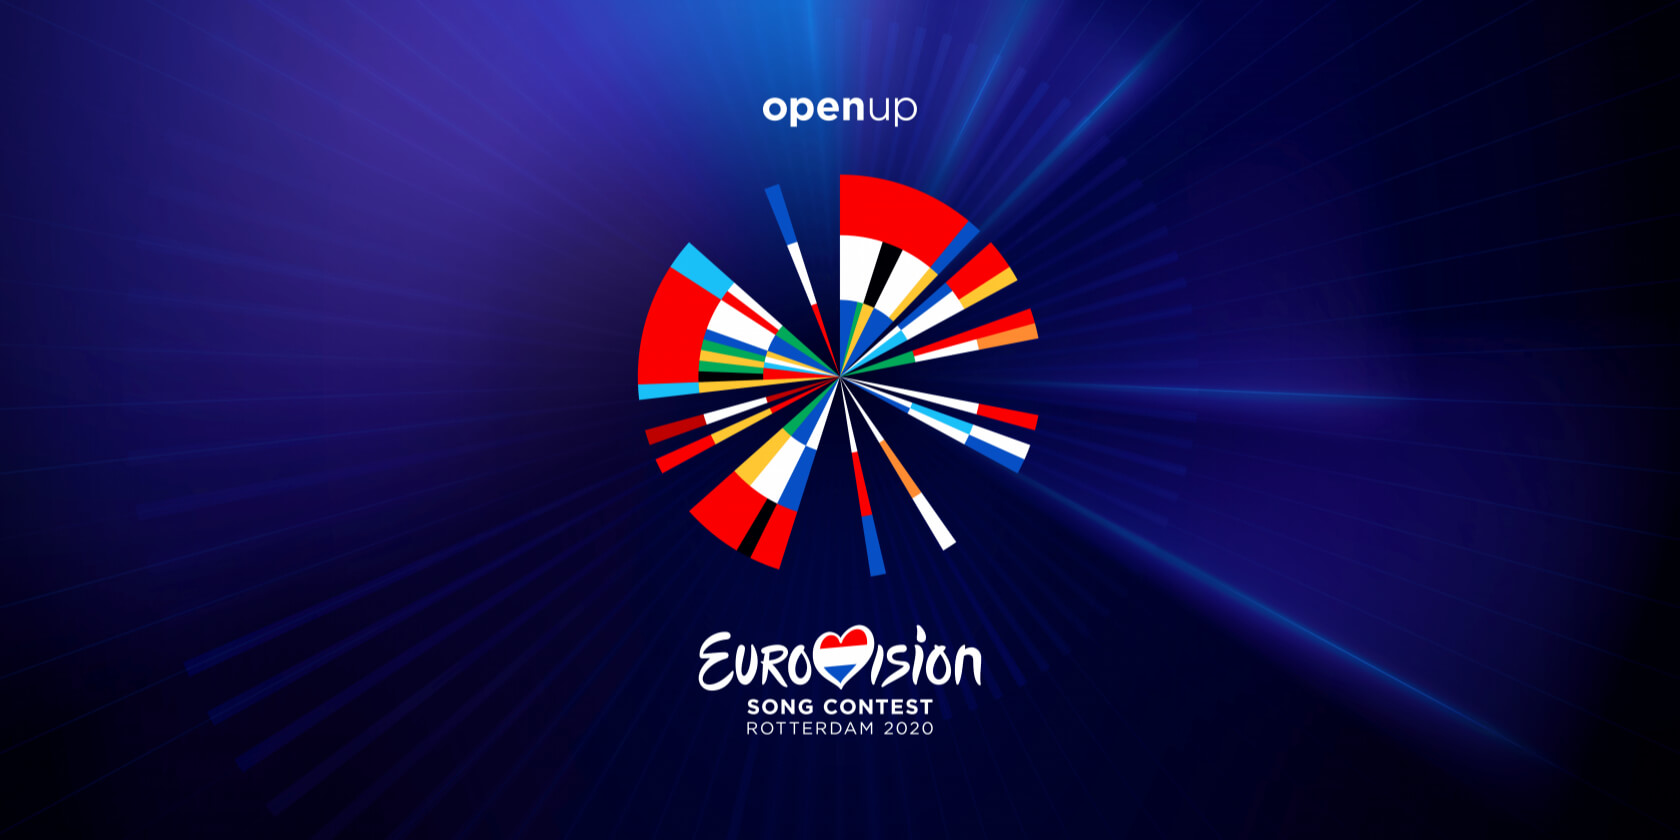 Eurovision betting odds bet365 rabotesht profit in 60 seconds binary options software review